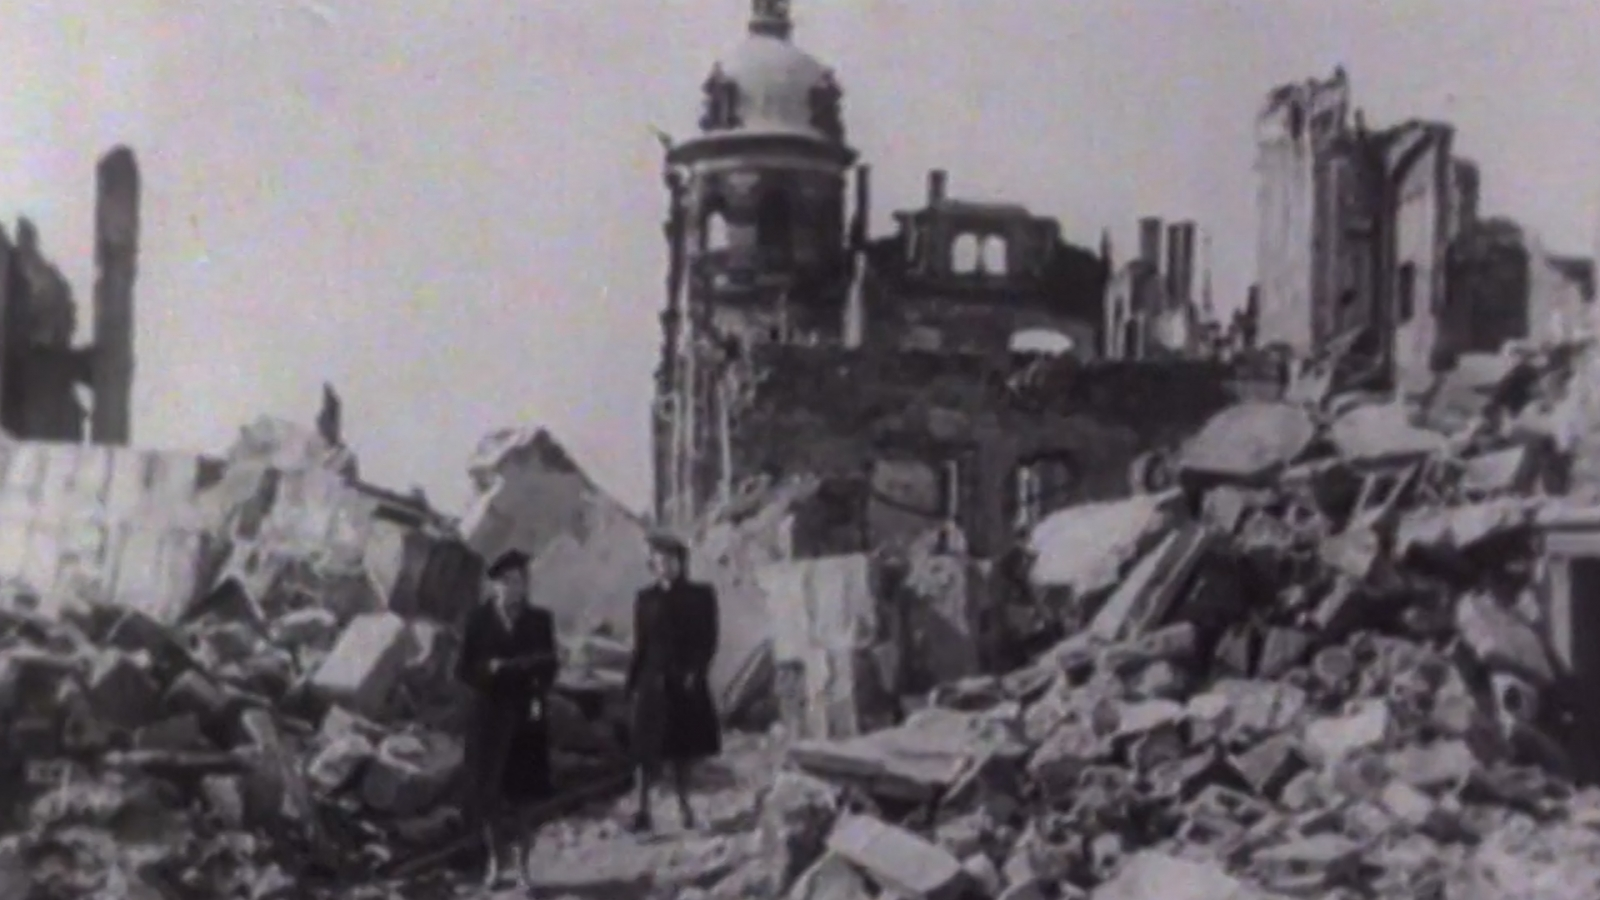 dresden bombing 70th anniversary archive footage of controversial